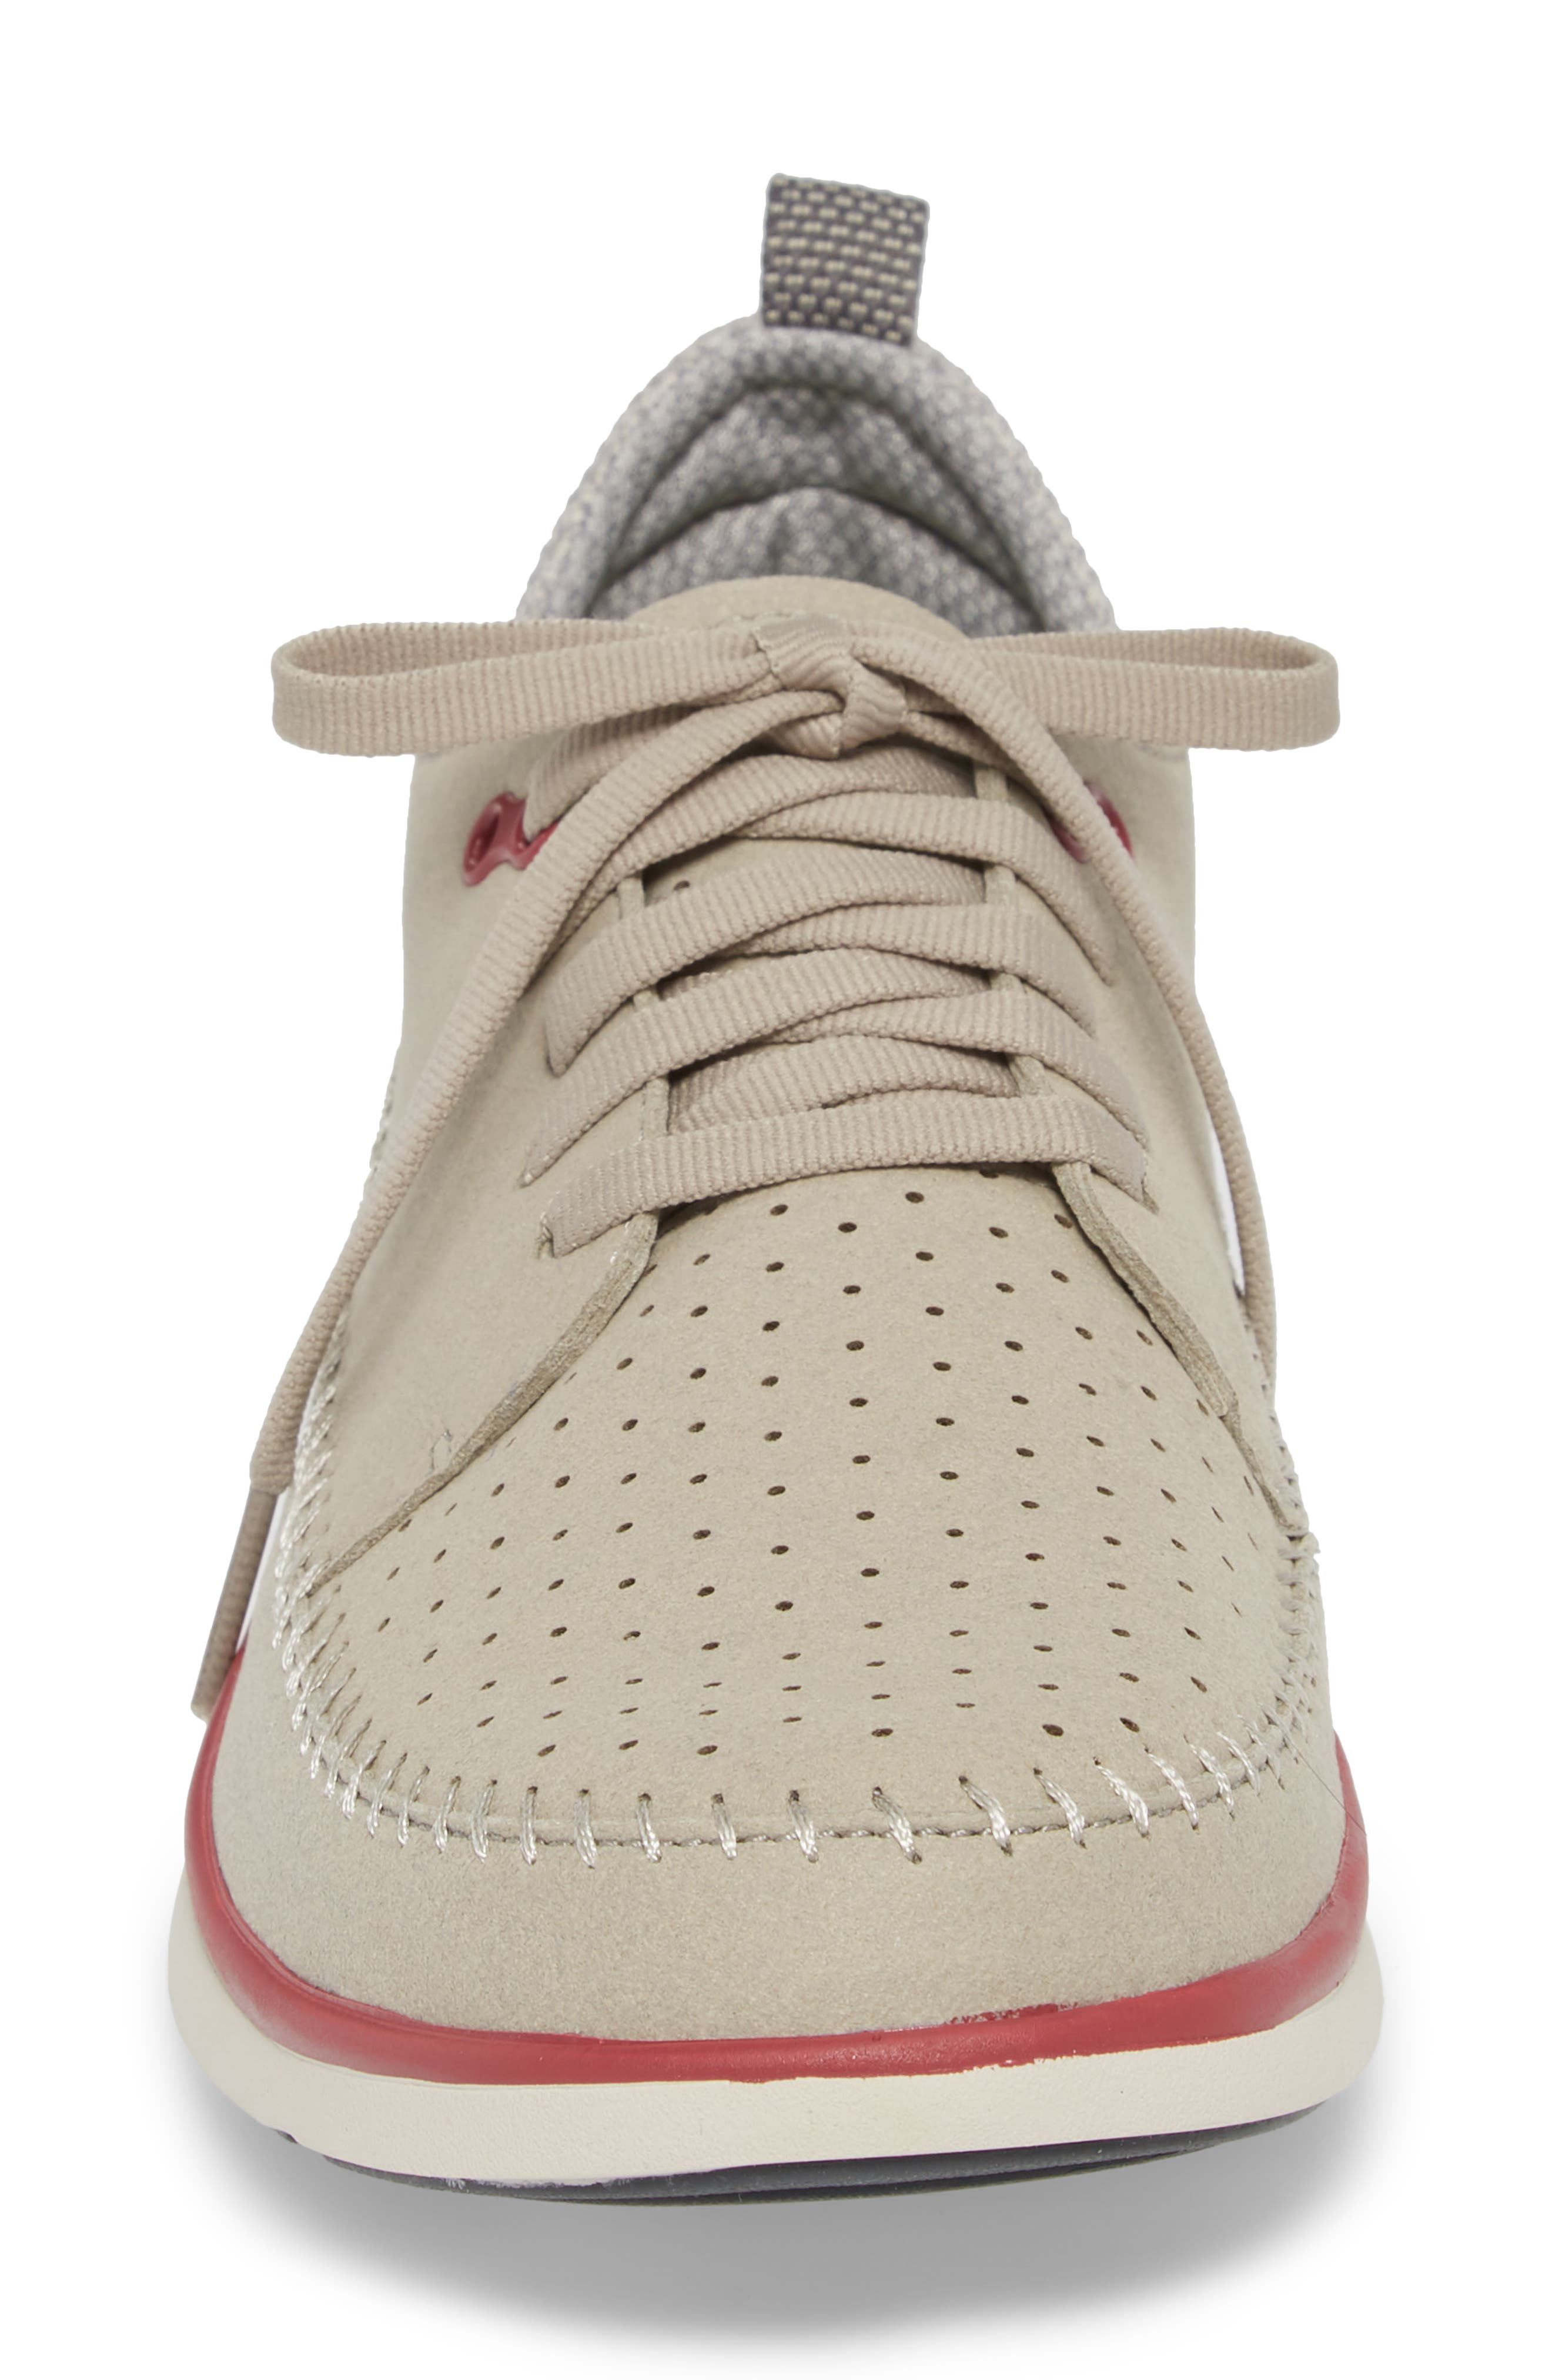 Worldwide Crane Perforated Sneaker,                             Alternate thumbnail 4, color,                             Grey